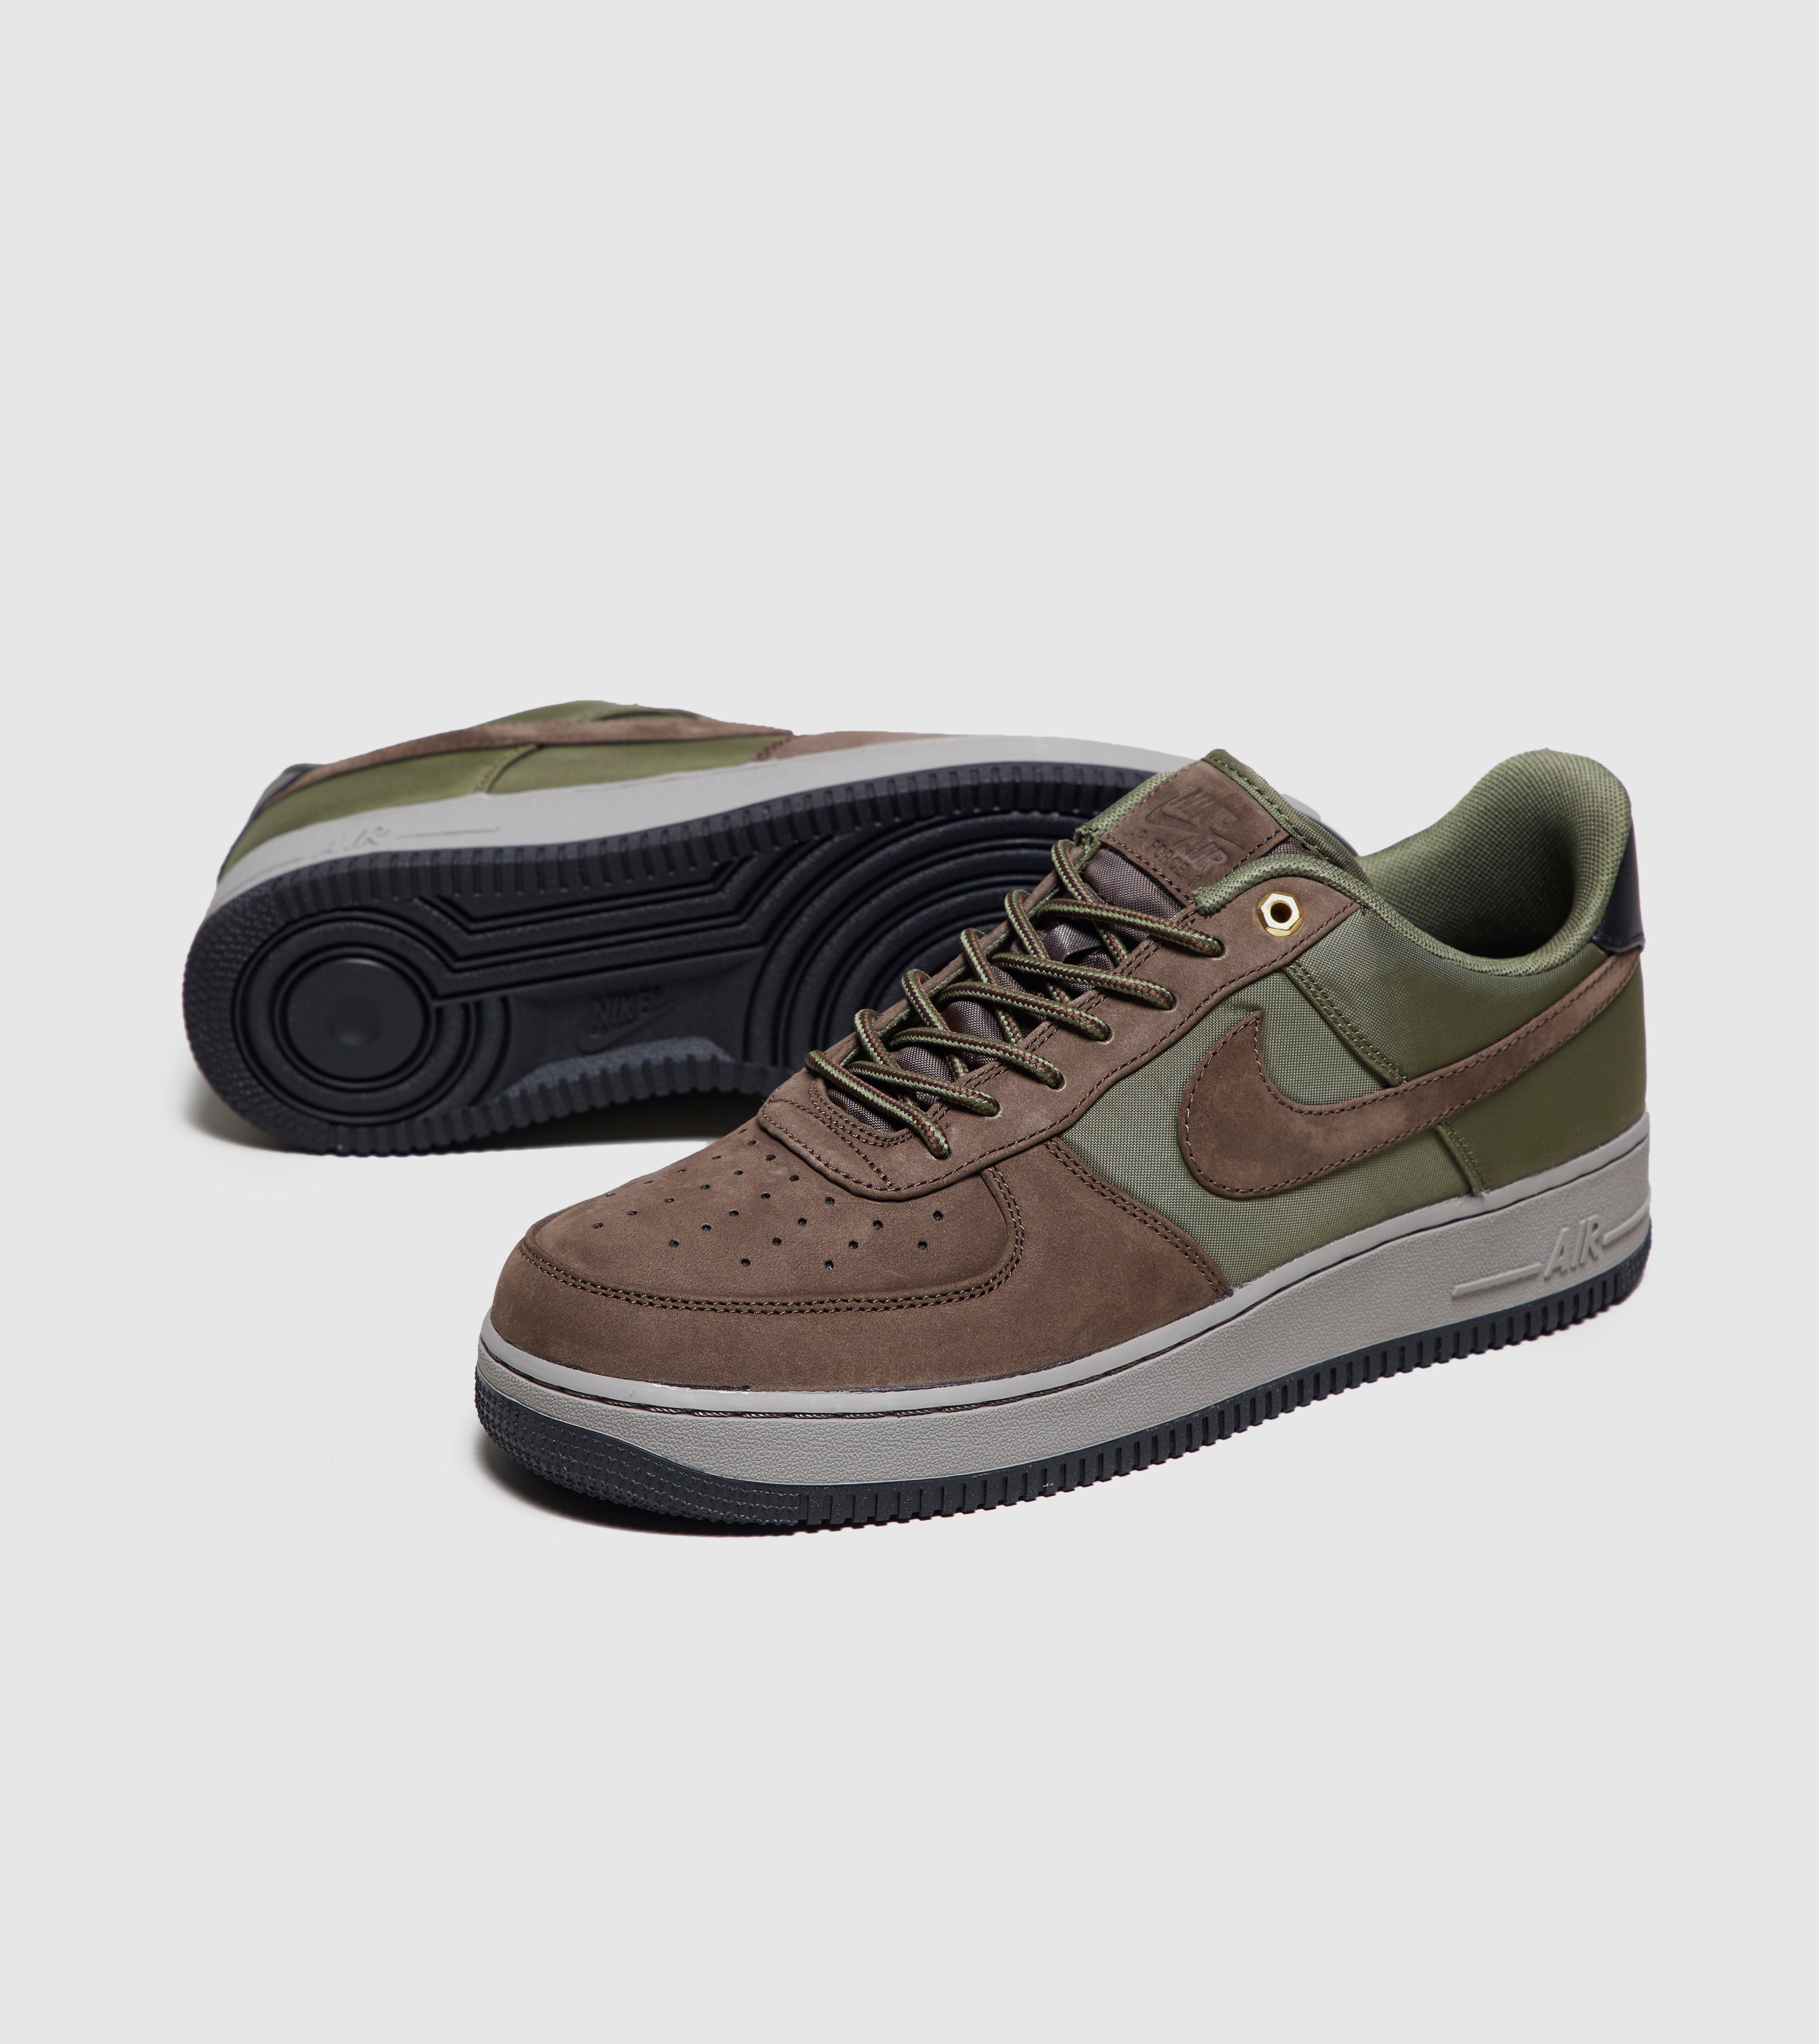 Nike Air Force 1 '07 Premier Low 'Beef and Broccoli'